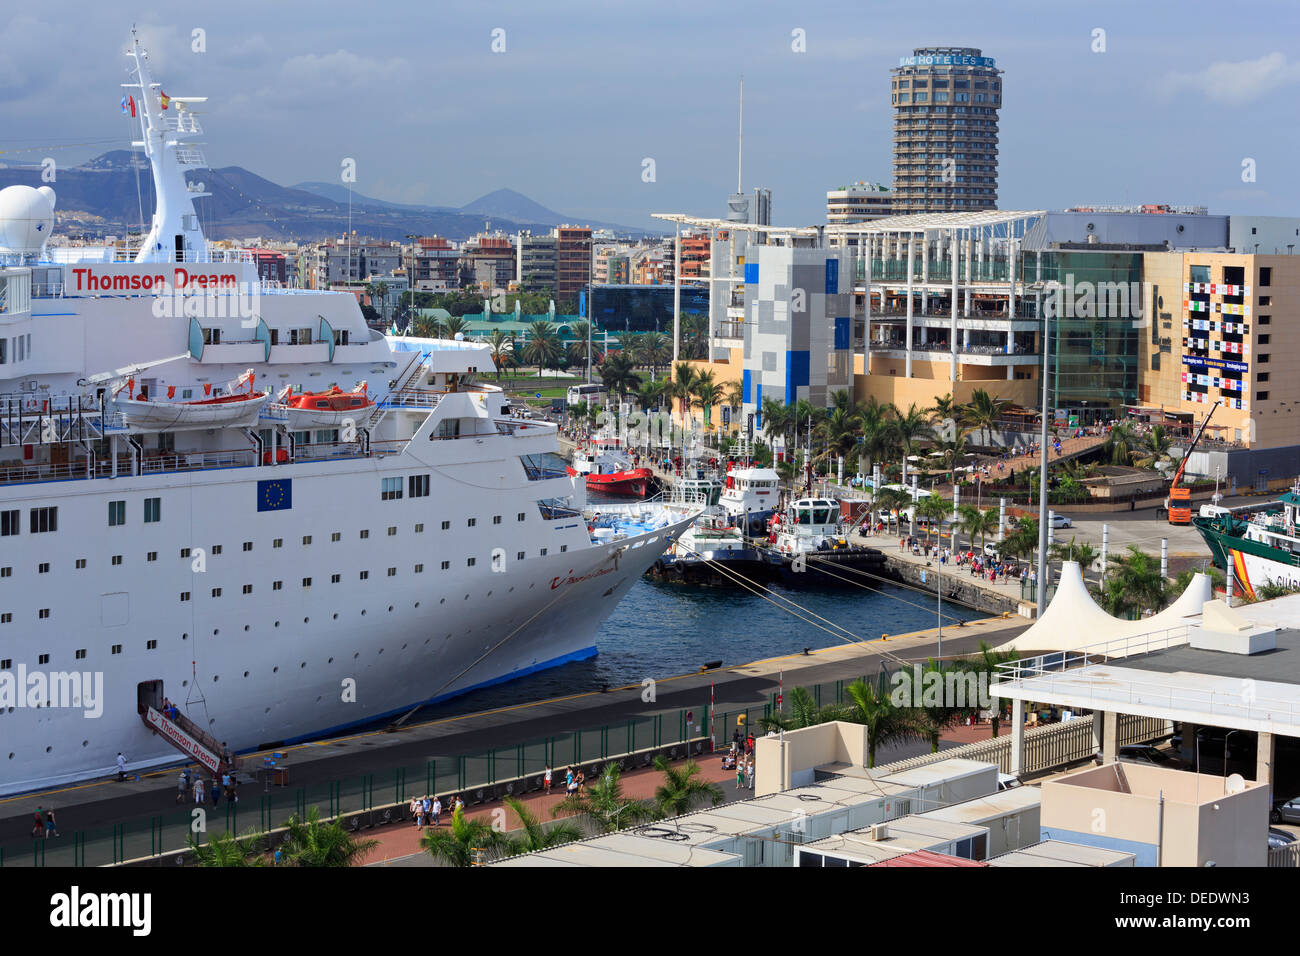 Cruise ship in santa catalina port las palmas city gran canaria stock photo royalty free - Port of las palmas gran canaria ...